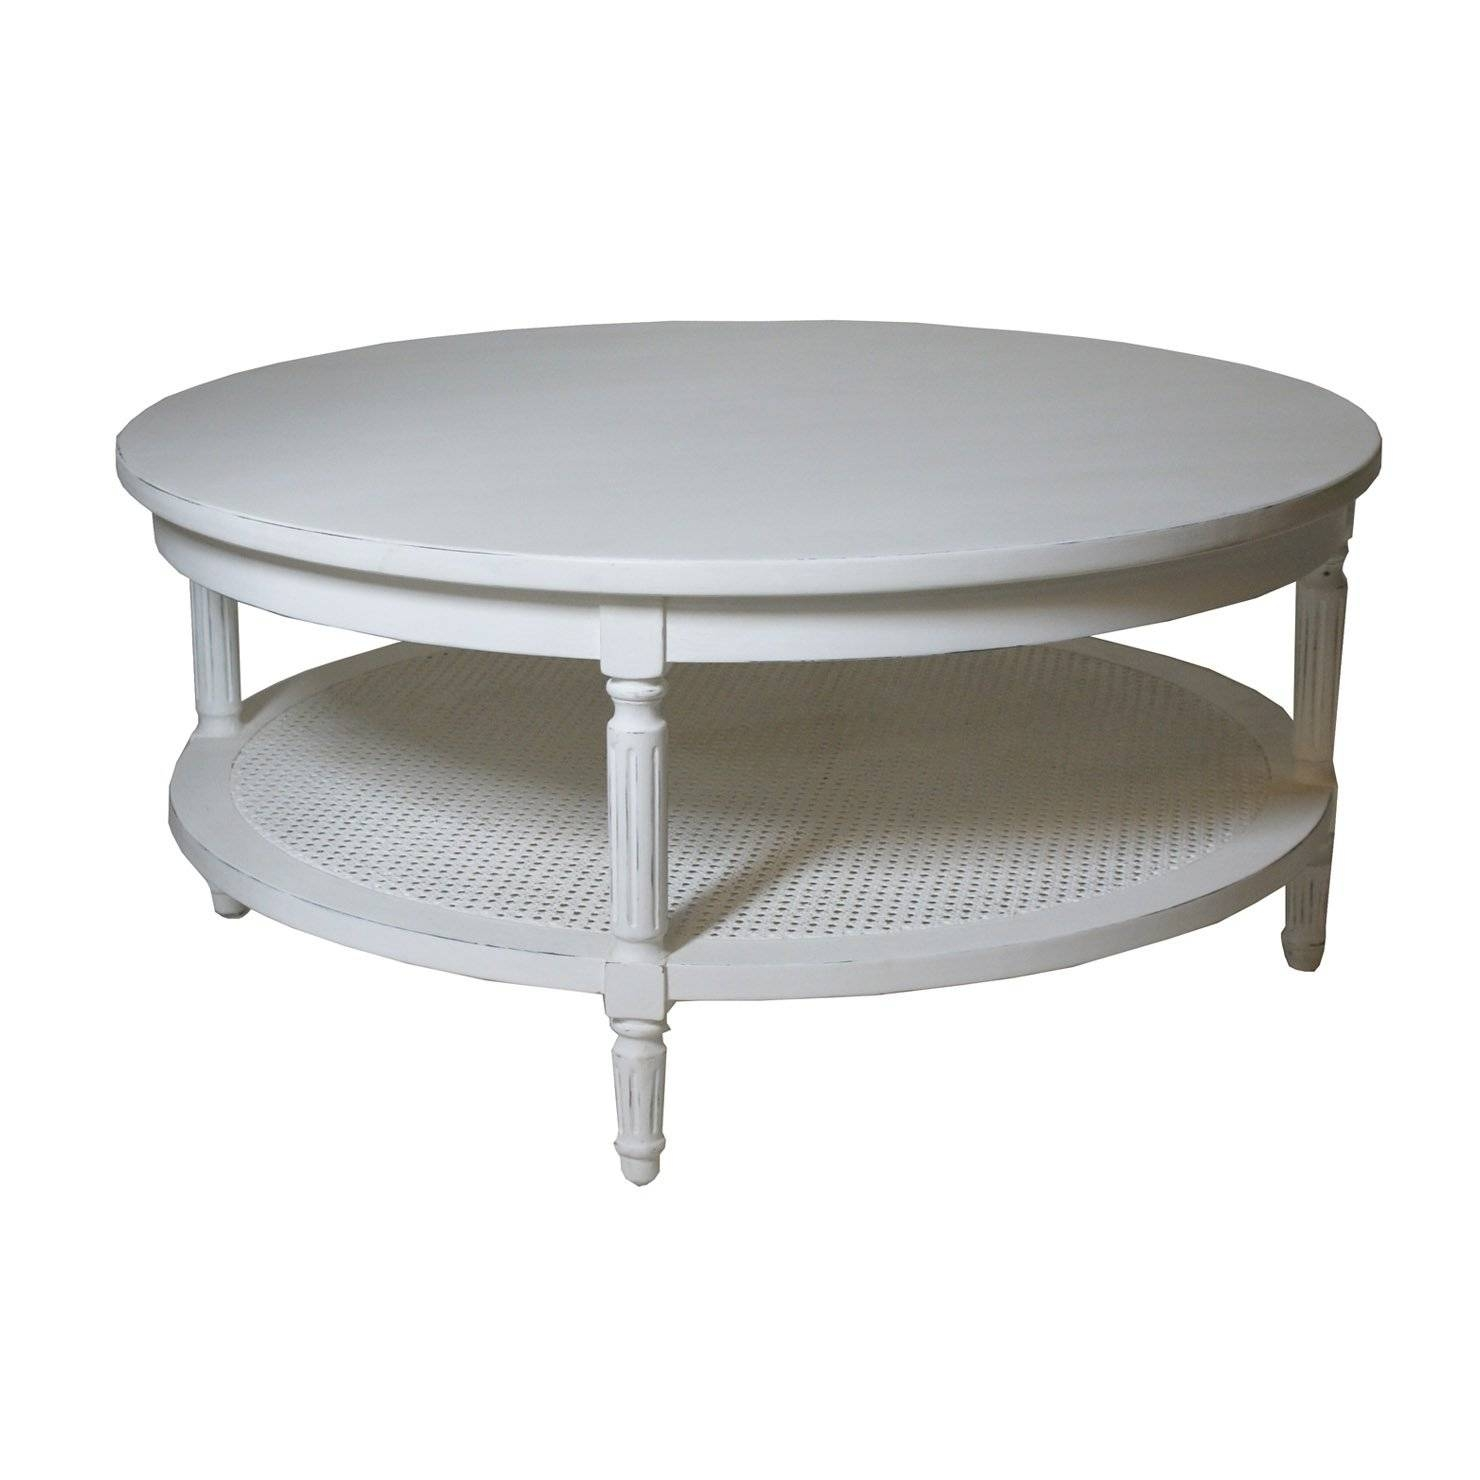 Coffee Table: Chic Round White Coffee Table Ideas Glass Top Coffee within White Coffee Tables With Storage (Image 3 of 30)